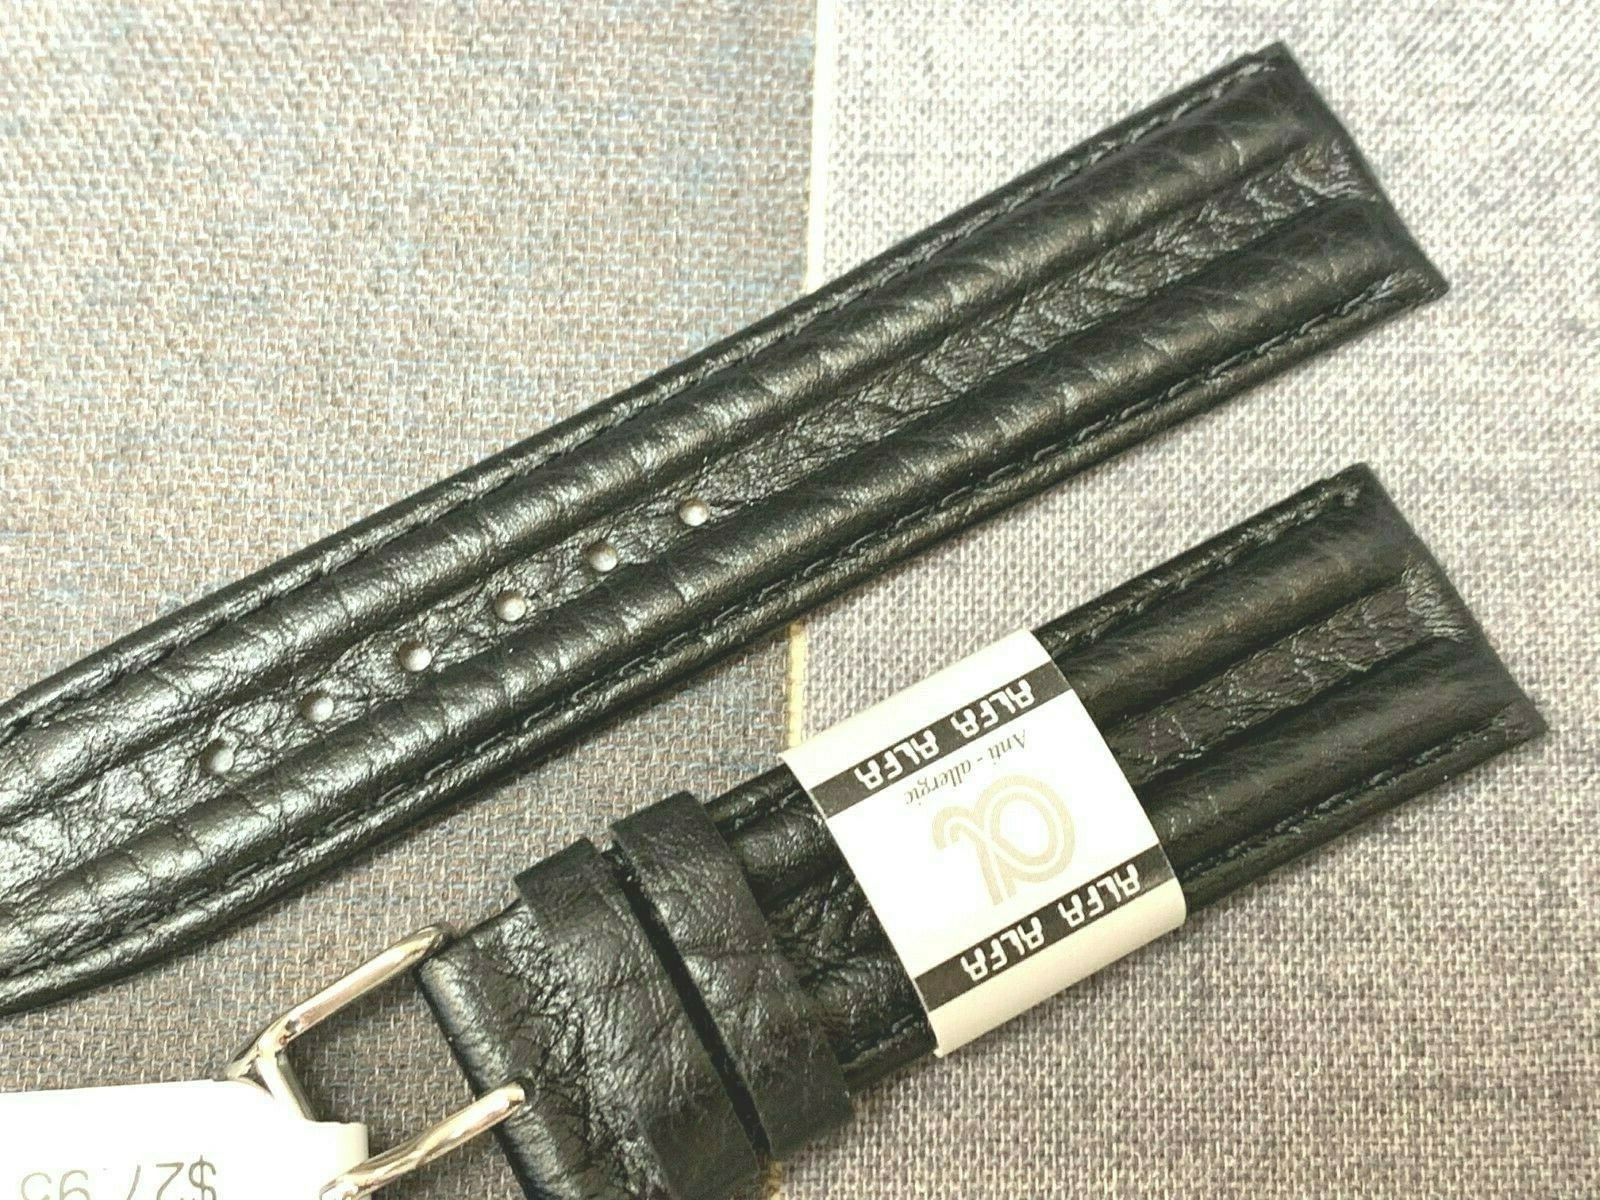 EURO ALFA WATCH BAND GENUINE LEATHER FOR KENNETH COLE DOUBLE HUMP 18MM